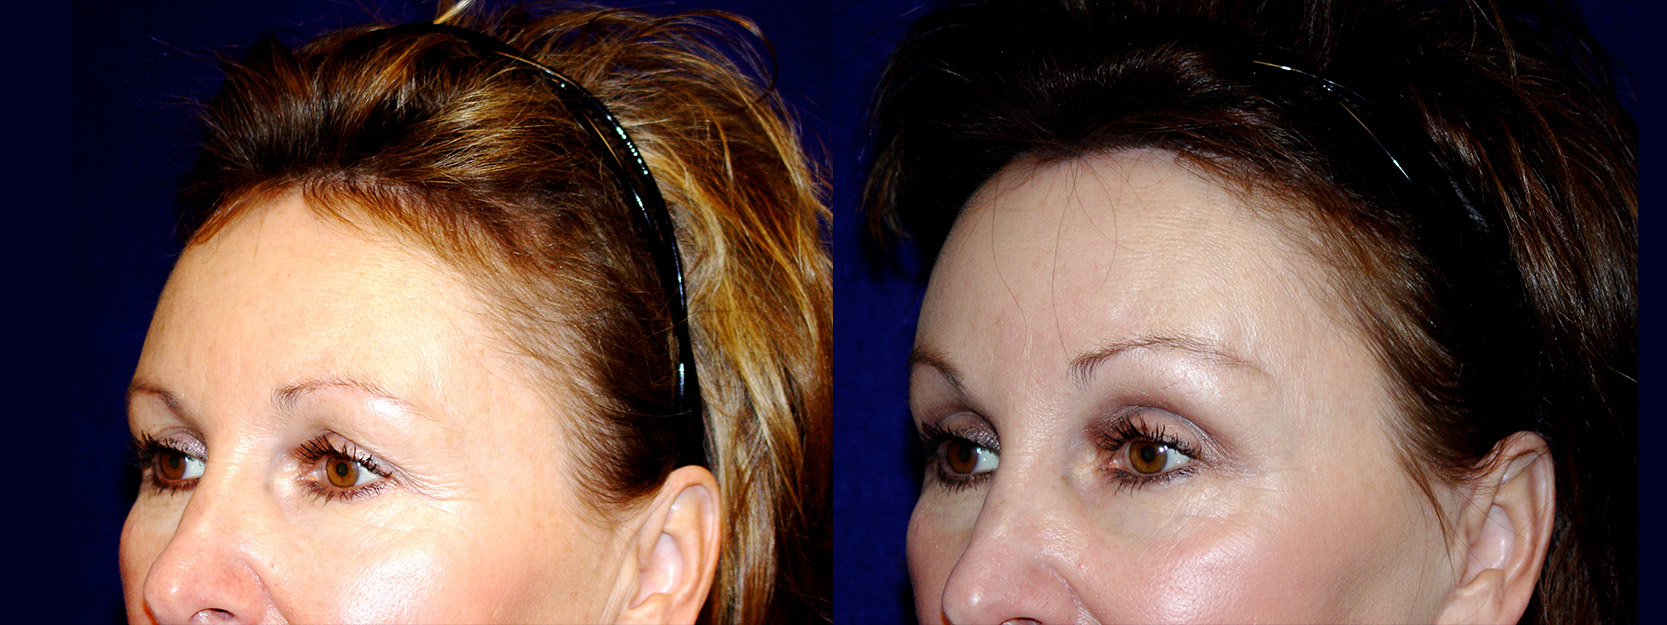 Left 3/4 View - Upper Eyelid Surgery and Browlift